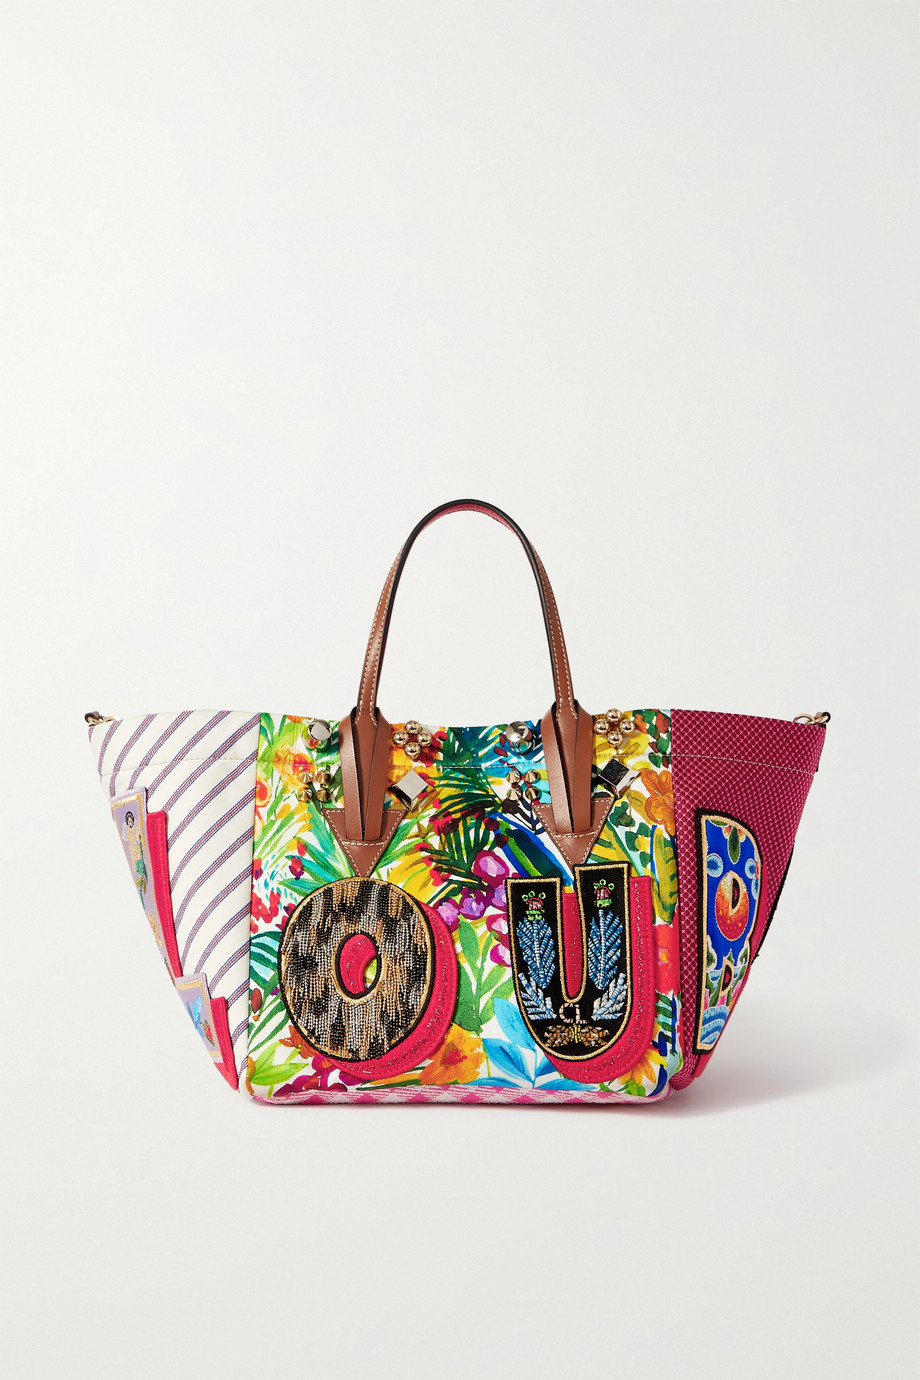 CHRISTIAN LOUBOUTIN Caracaba small leather-trimmed appliquéd patchwork canvas tote